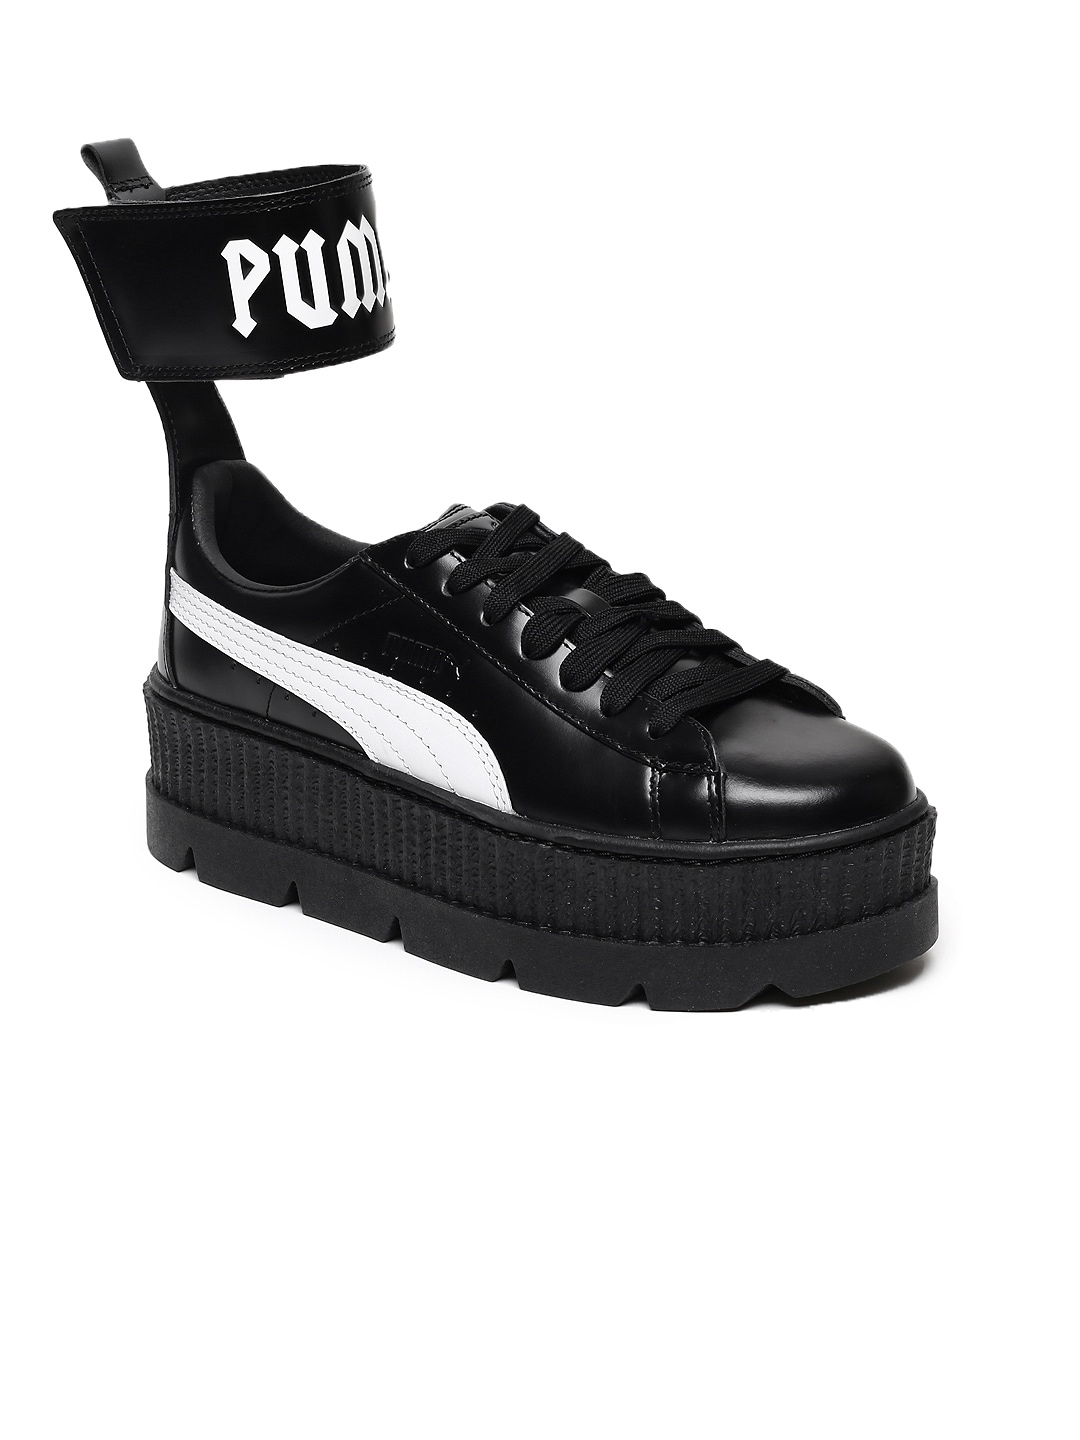 newest 77cad f9680 Puma Women Black Solid Leather High-Top Sneakers